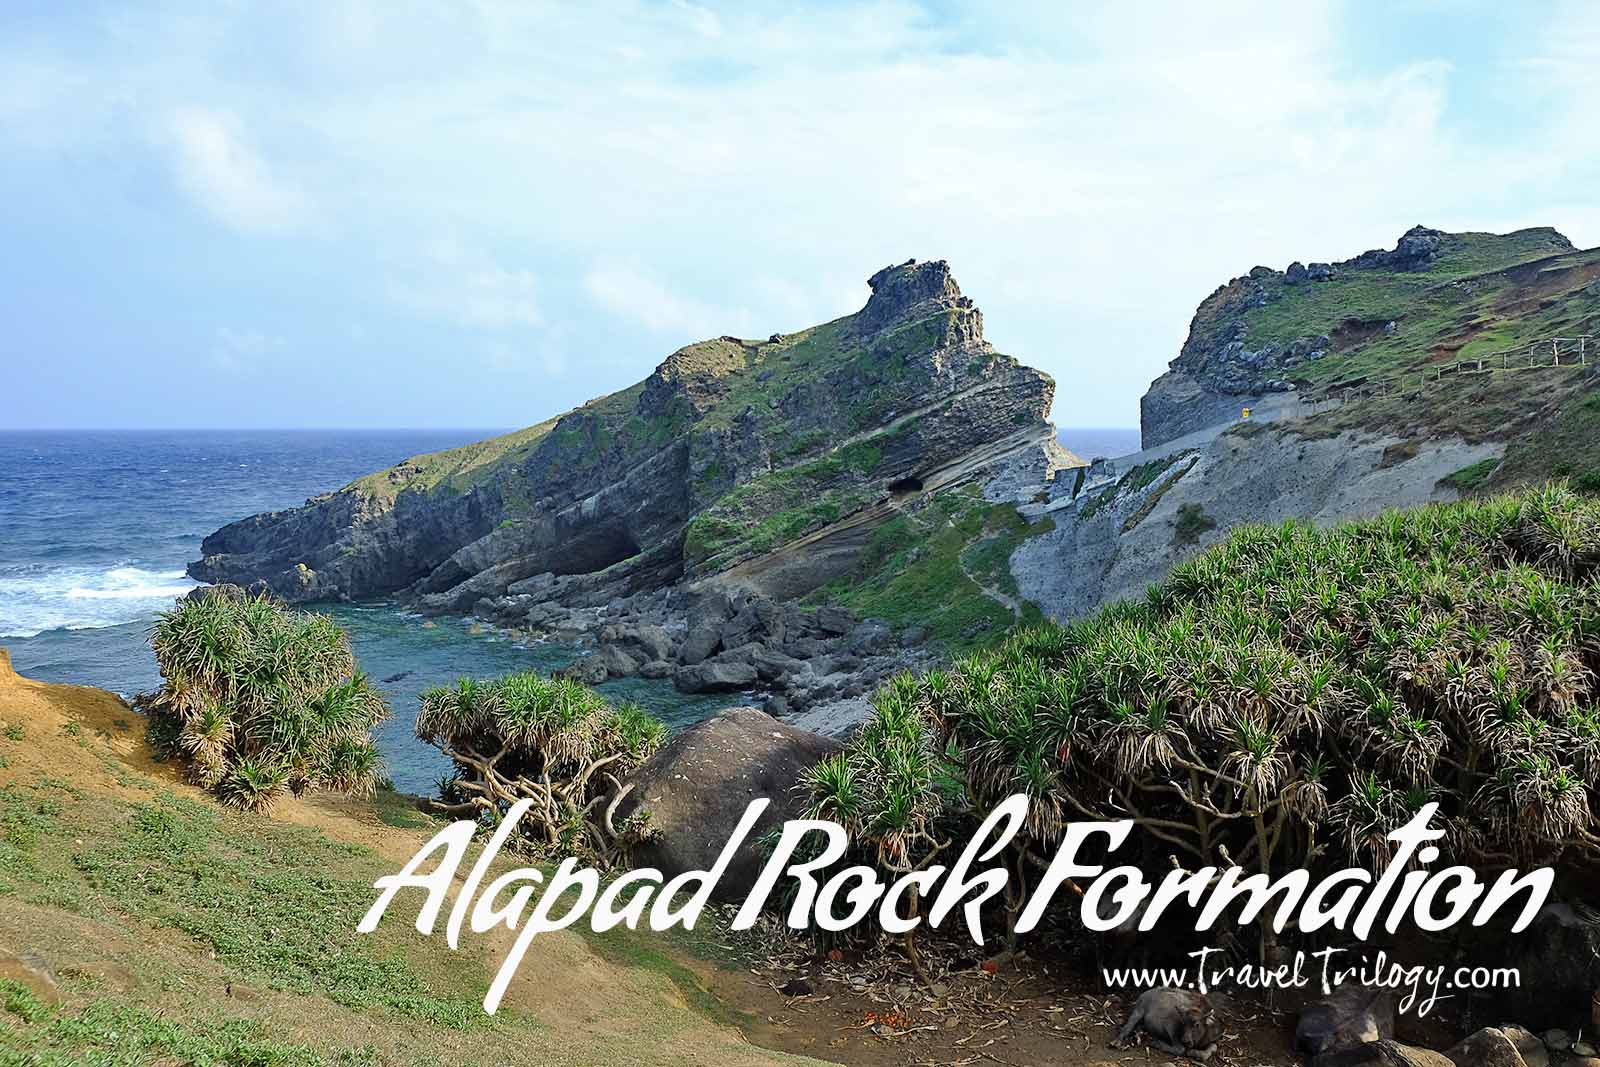 alapad rock formation batanes